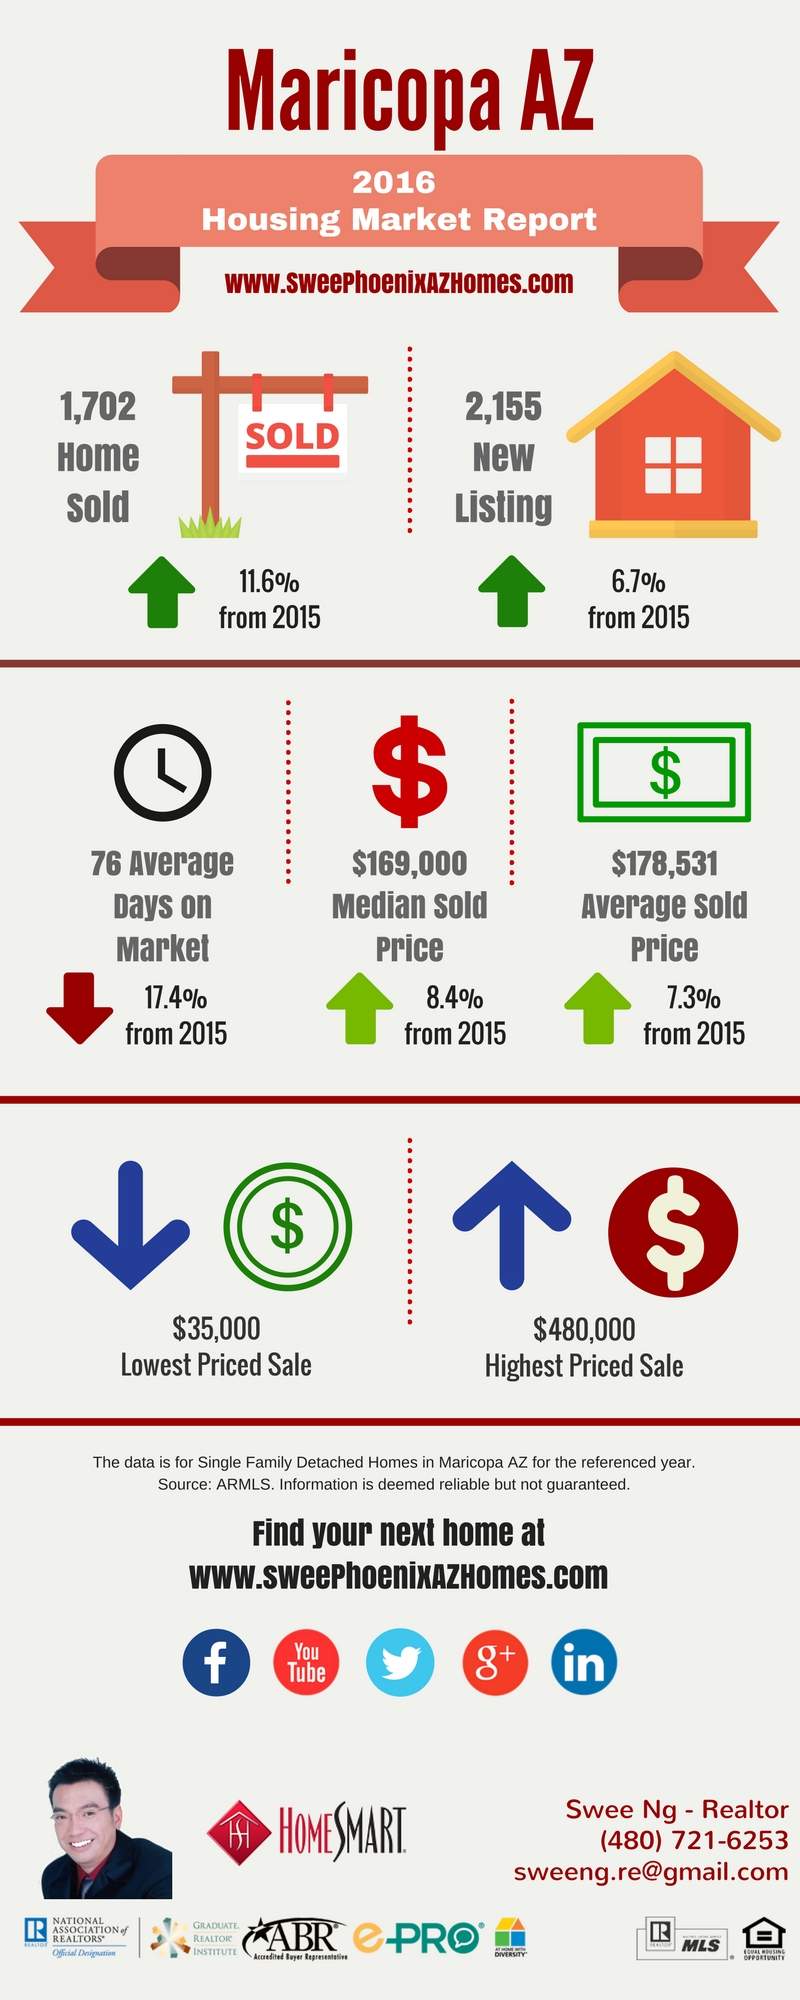 2016 Maricopa AZ Housing Market Trends Report, Statistics and Home Price by Swee Ng